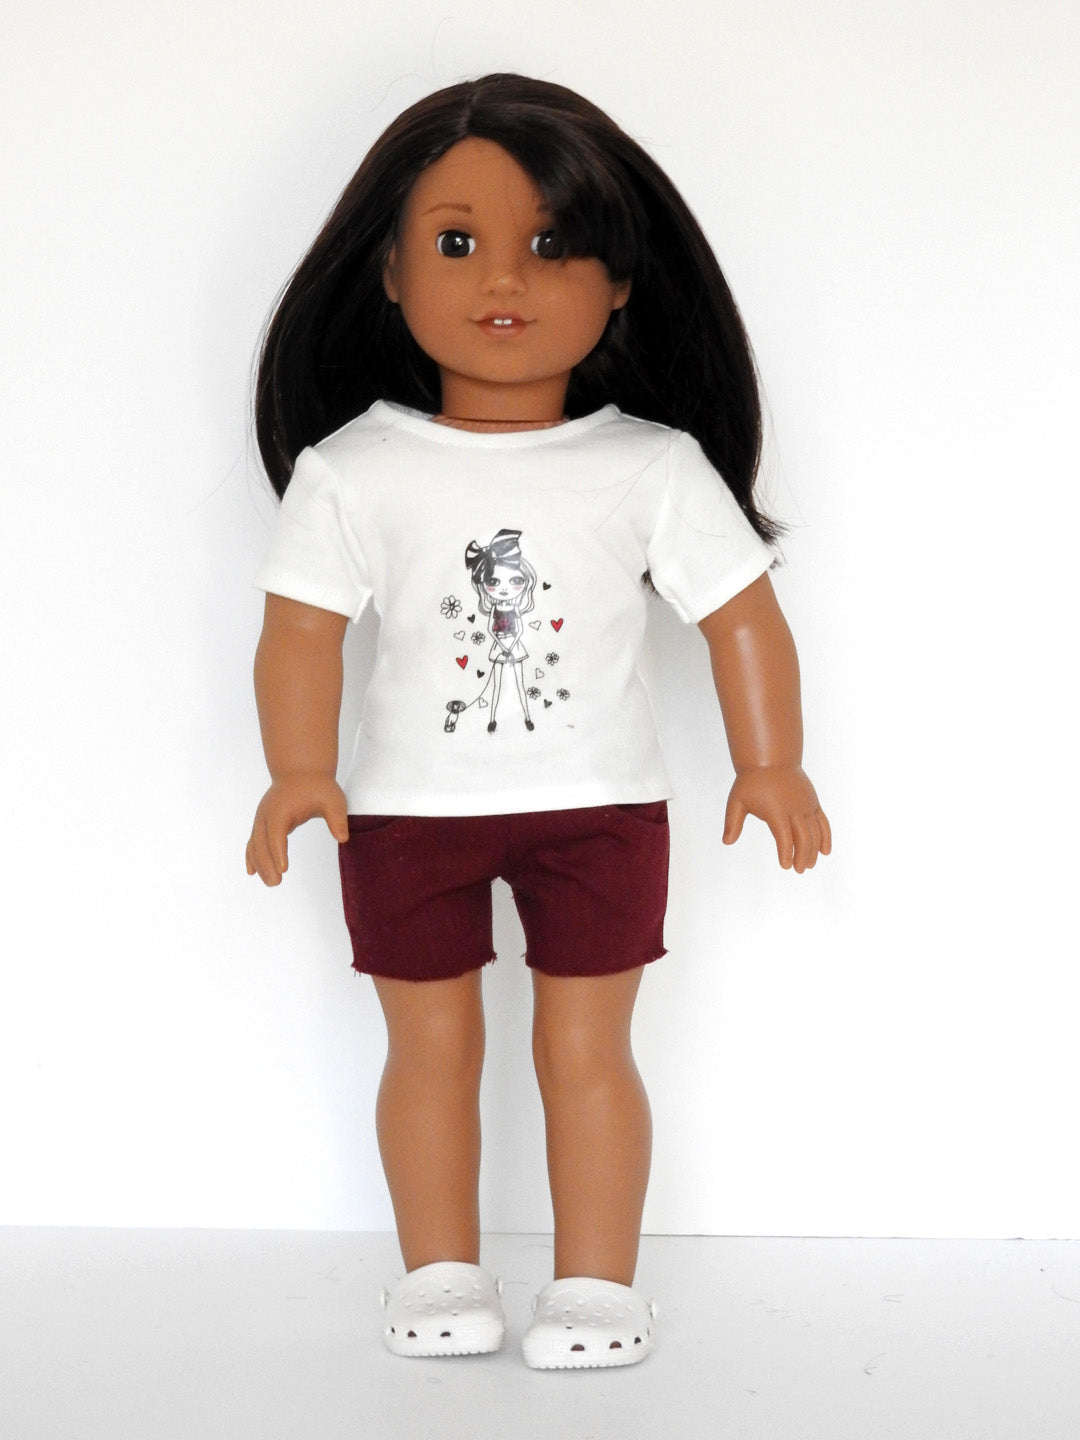 American Girl doll graphic t-shirt